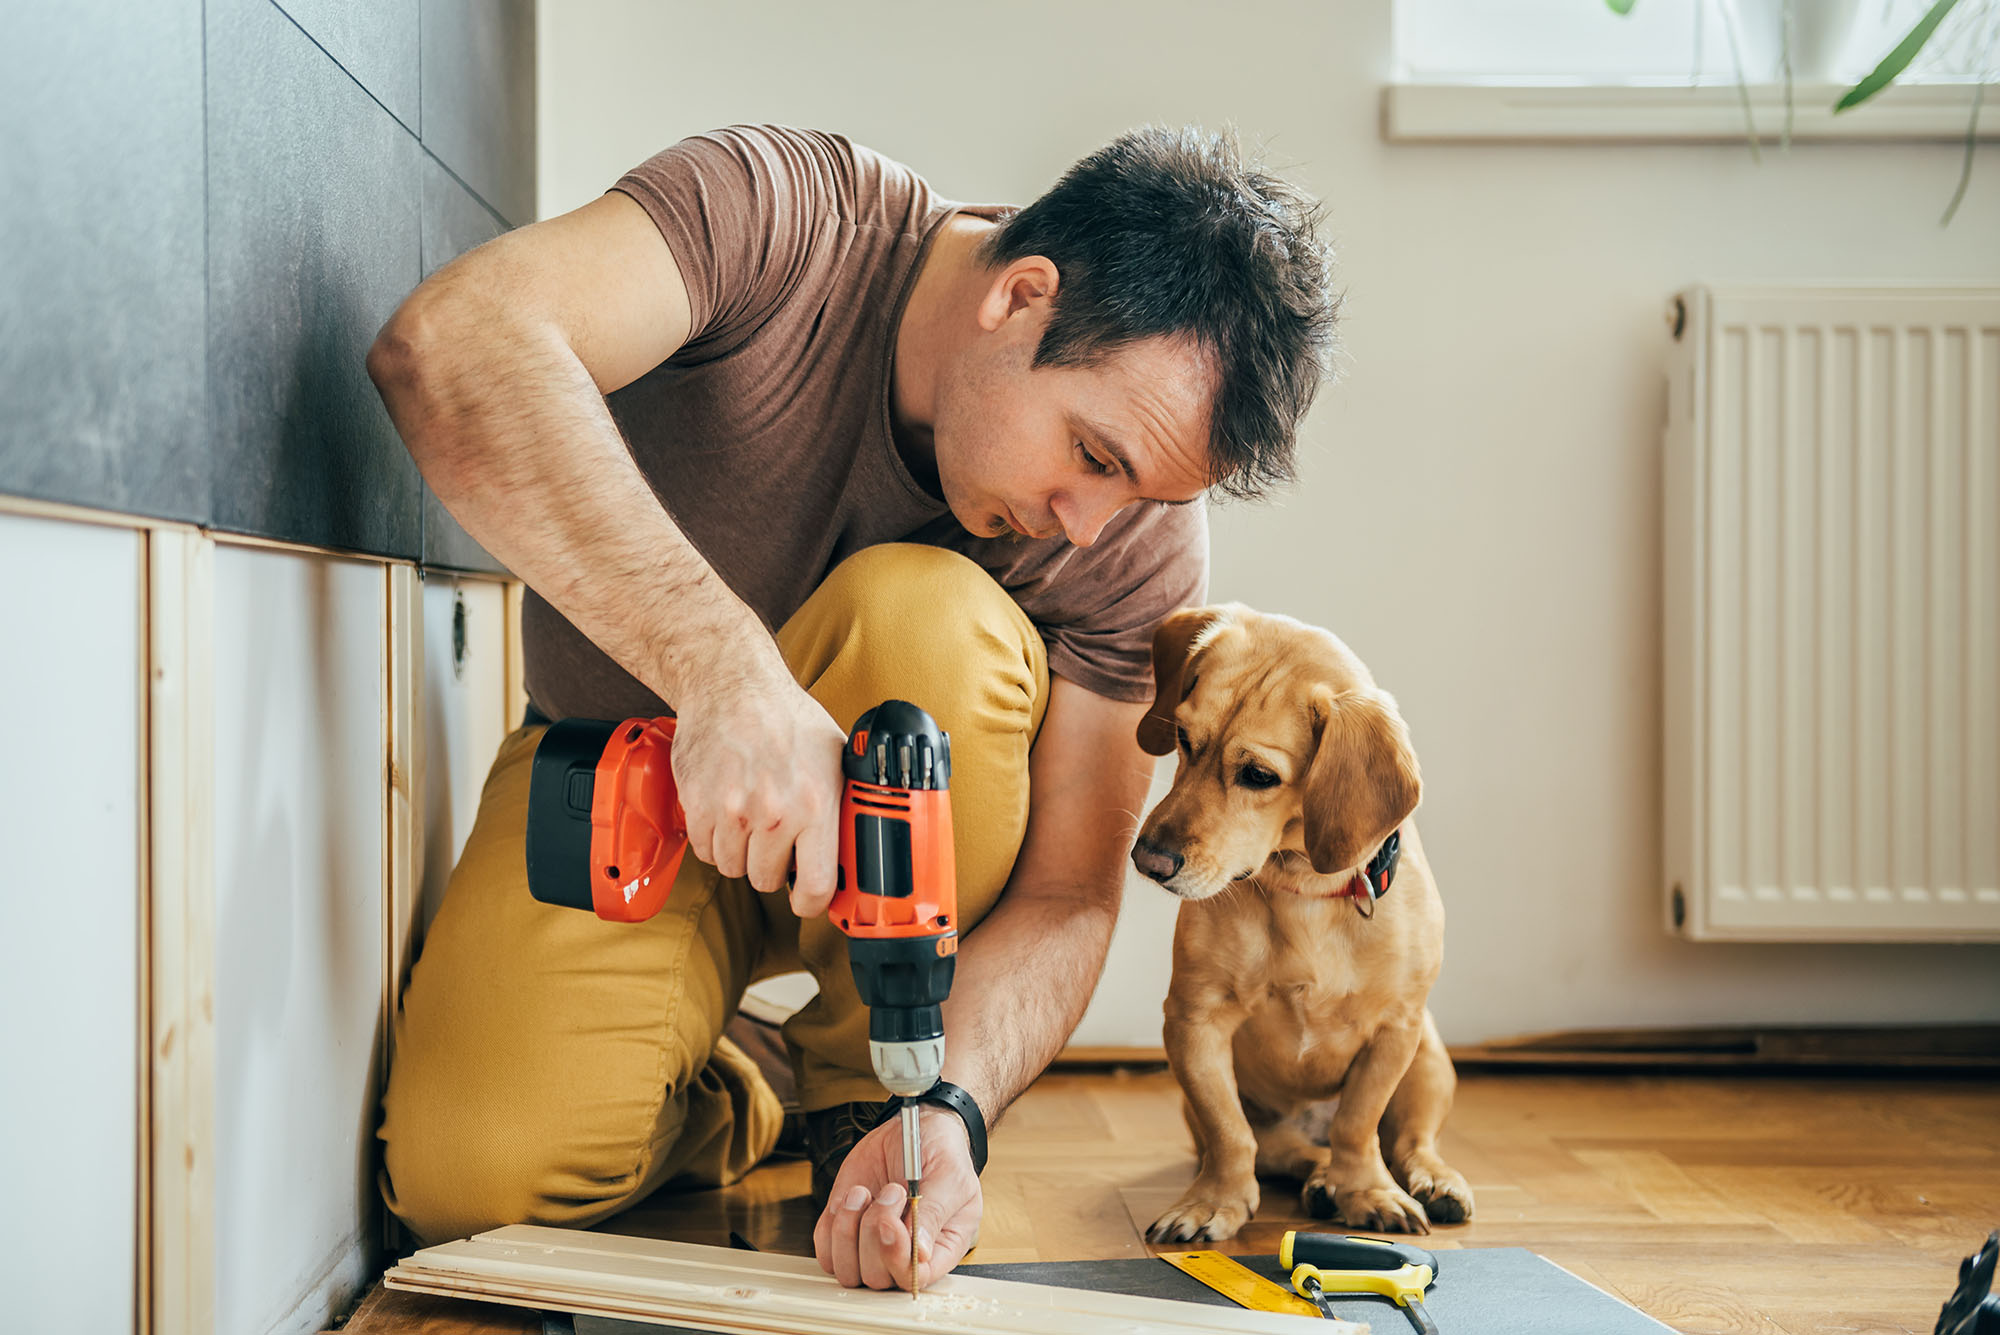 Man,Doing,Renovation,Work,At,Home,Together,With,His,Small